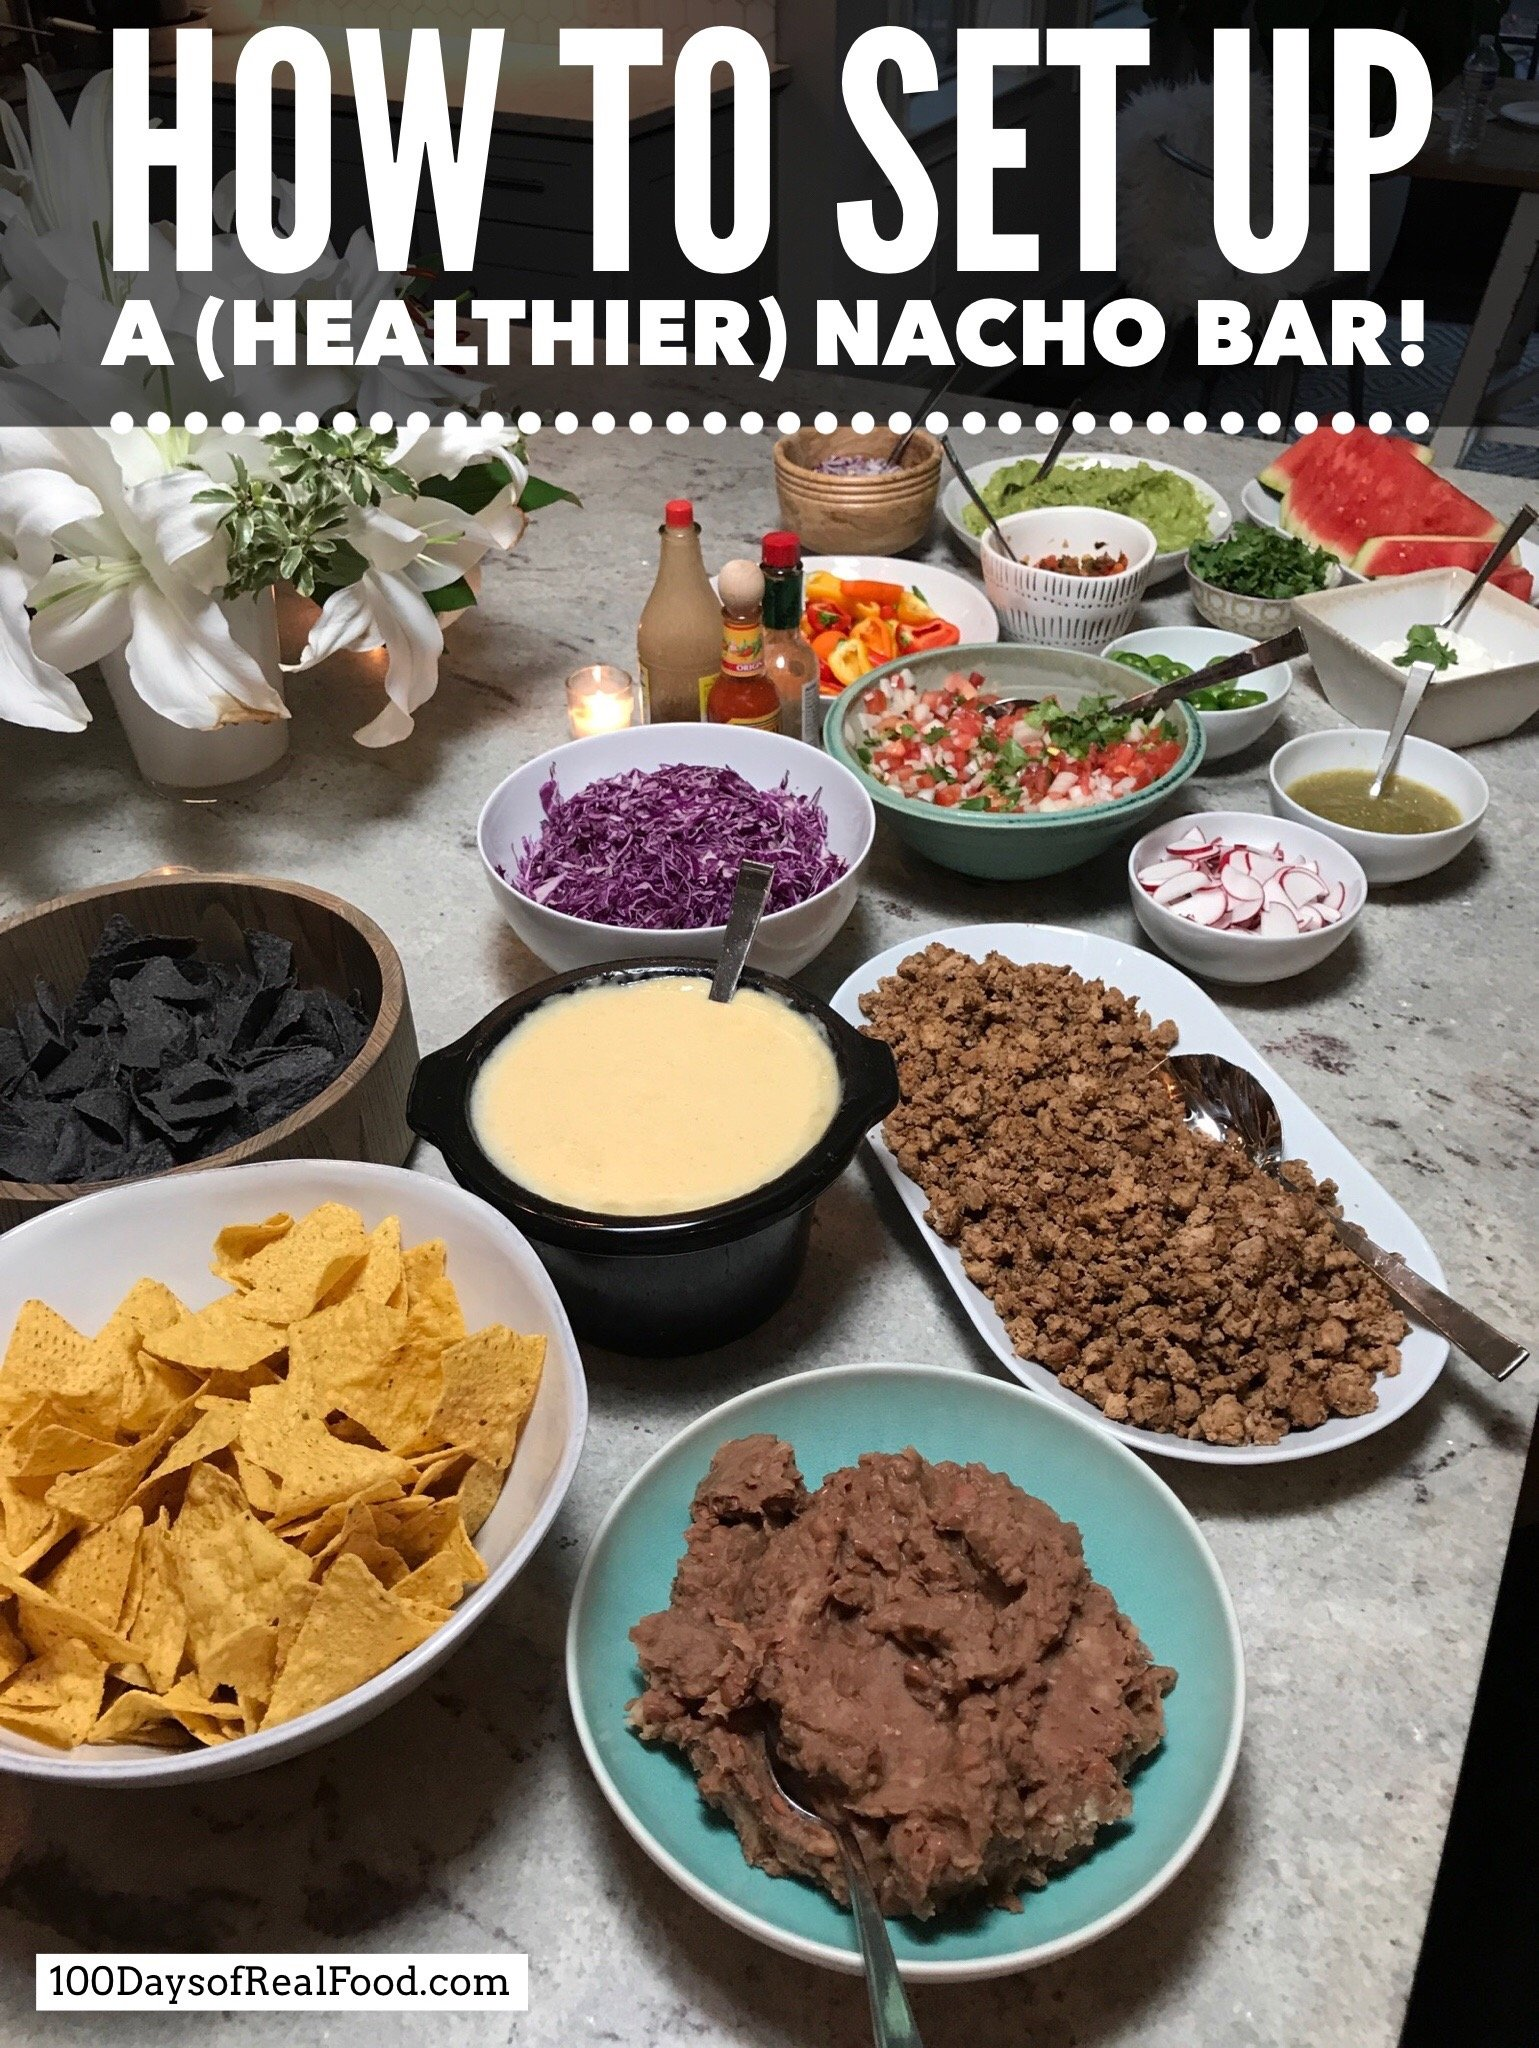 How to Set Up a Healthier Nacho Bar on 100 Days of Real Food